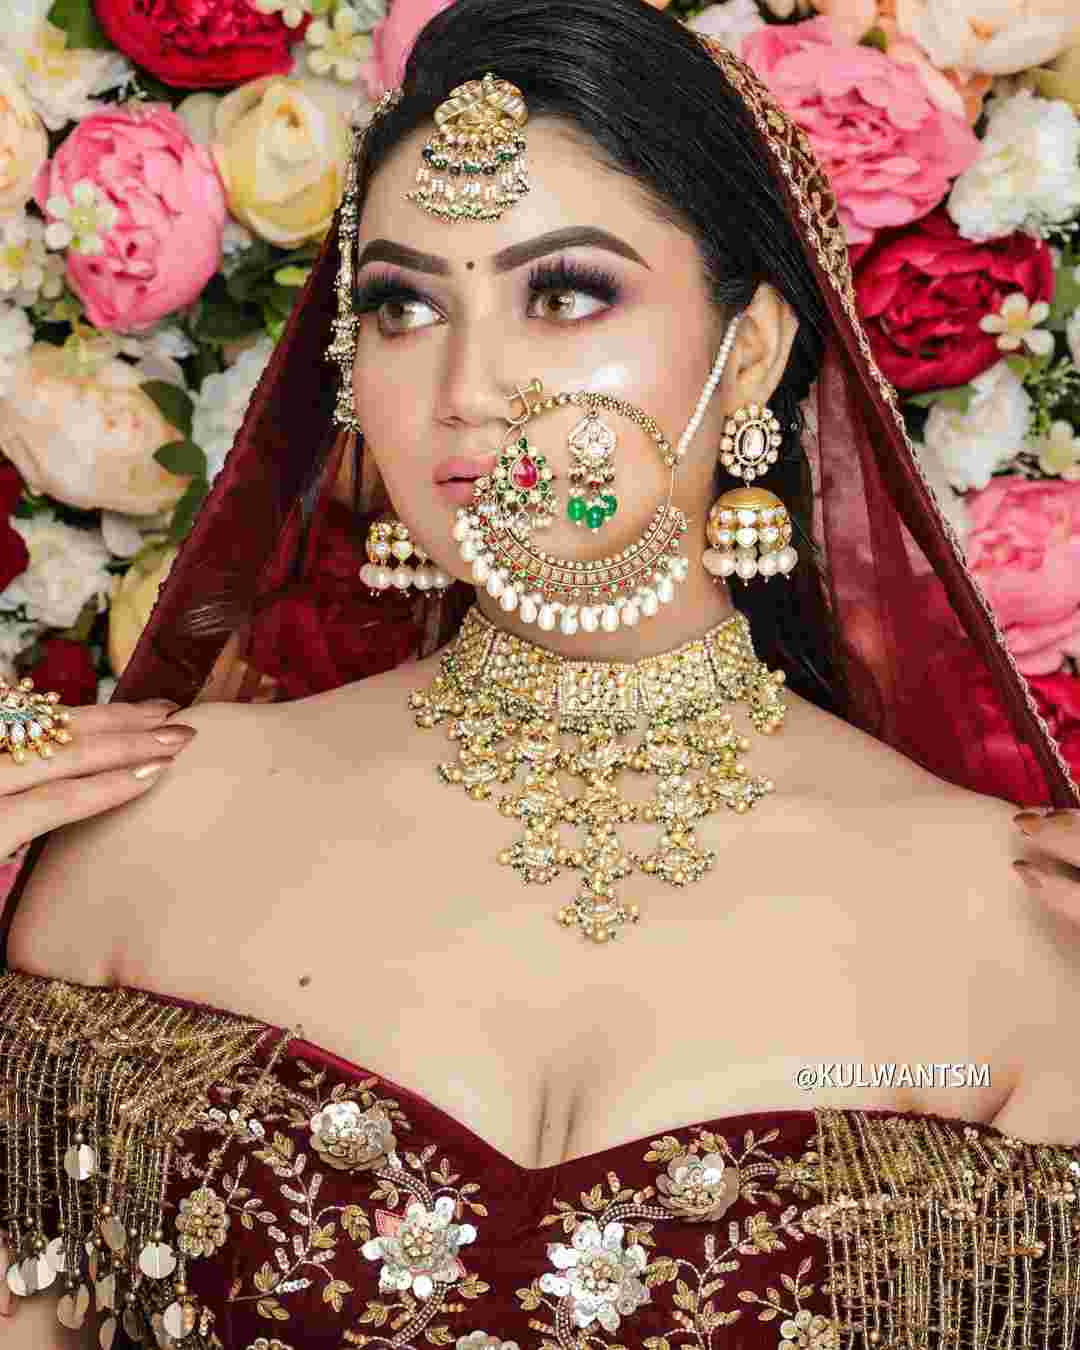 Bridal Nath | Bridal Naath | Bridal Jewelry | Bridal makeup | Bridal outfit | Wedding Jewellery